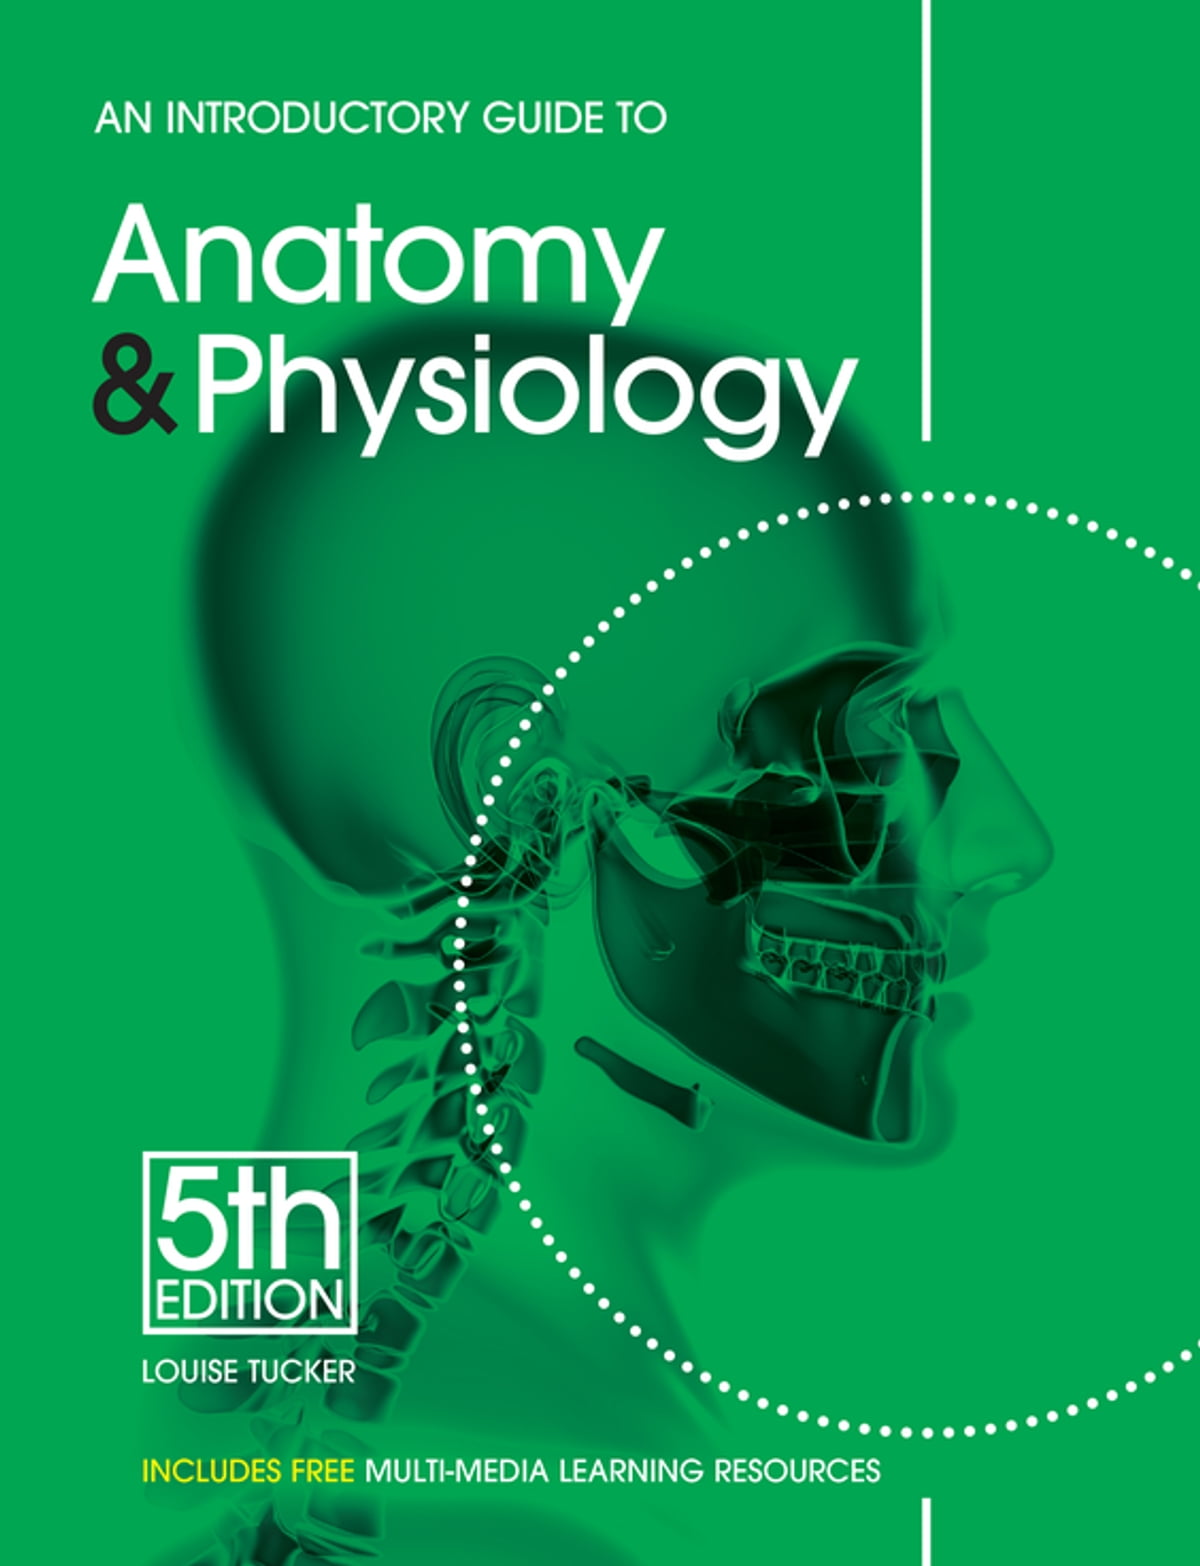 An Introductory Guide to Anatomy & Physiology eBook by Louise Tucker ...